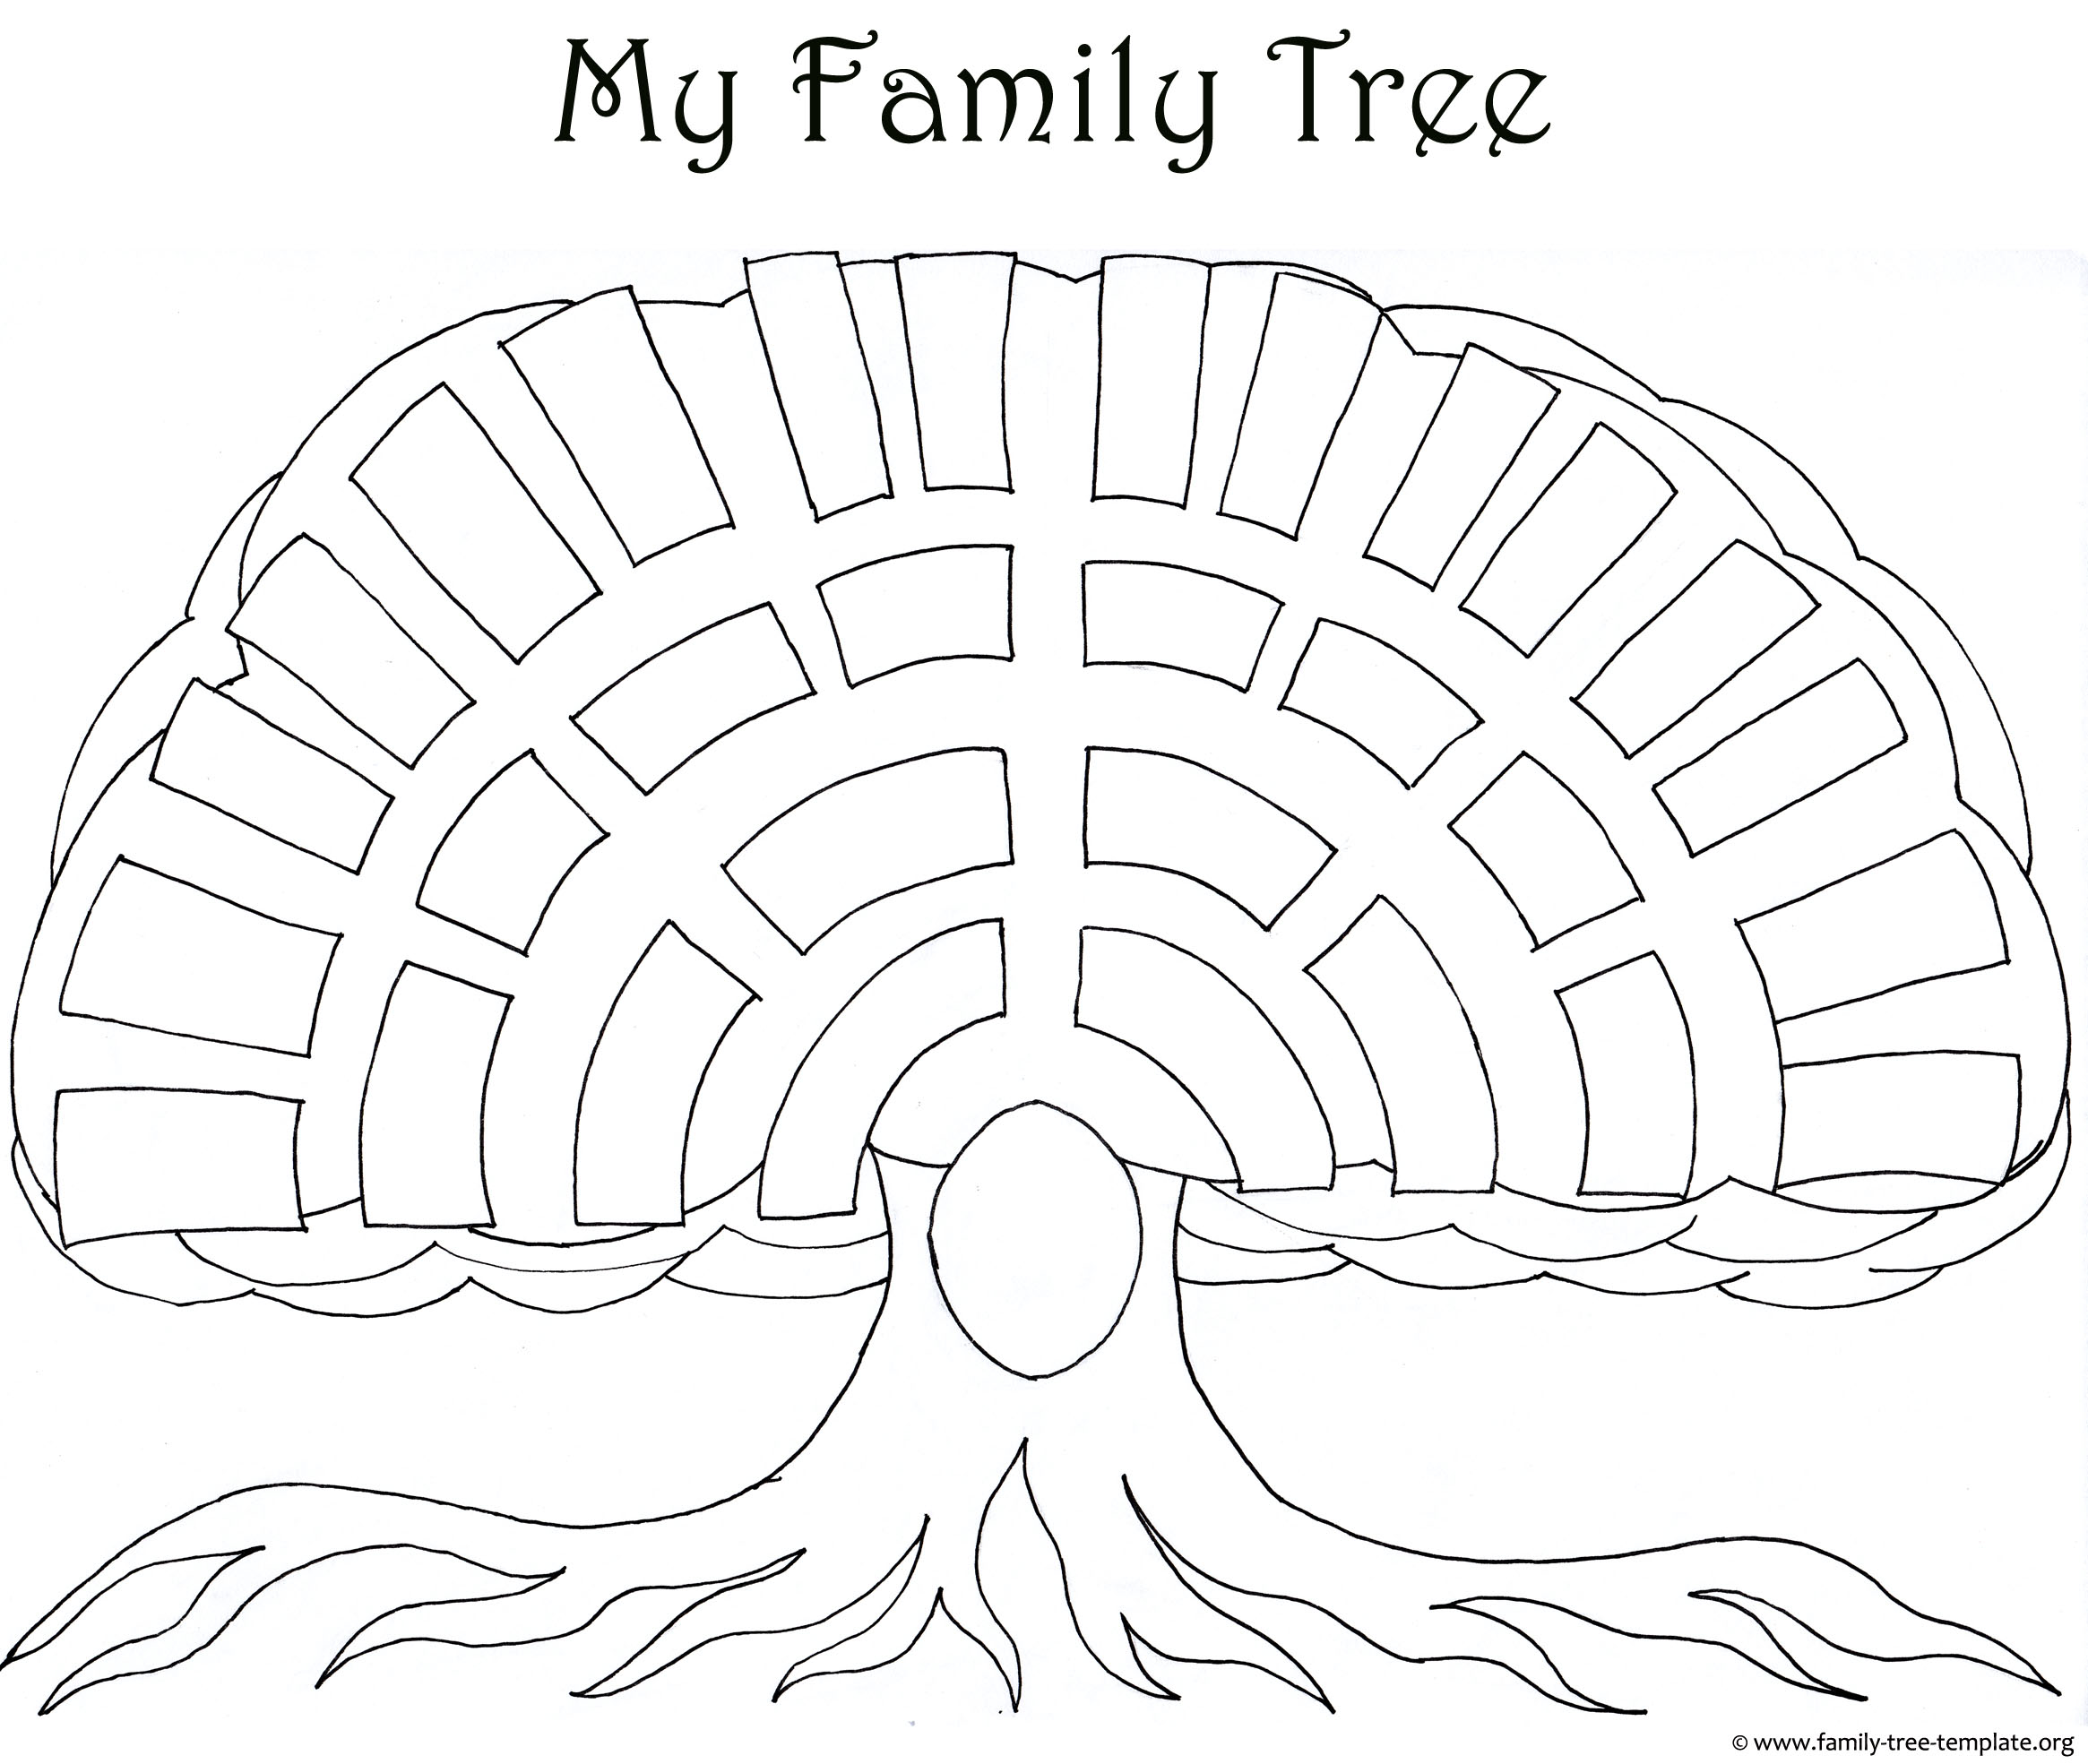 how to draw a family tree template - family tree templates genealogy clipart for your